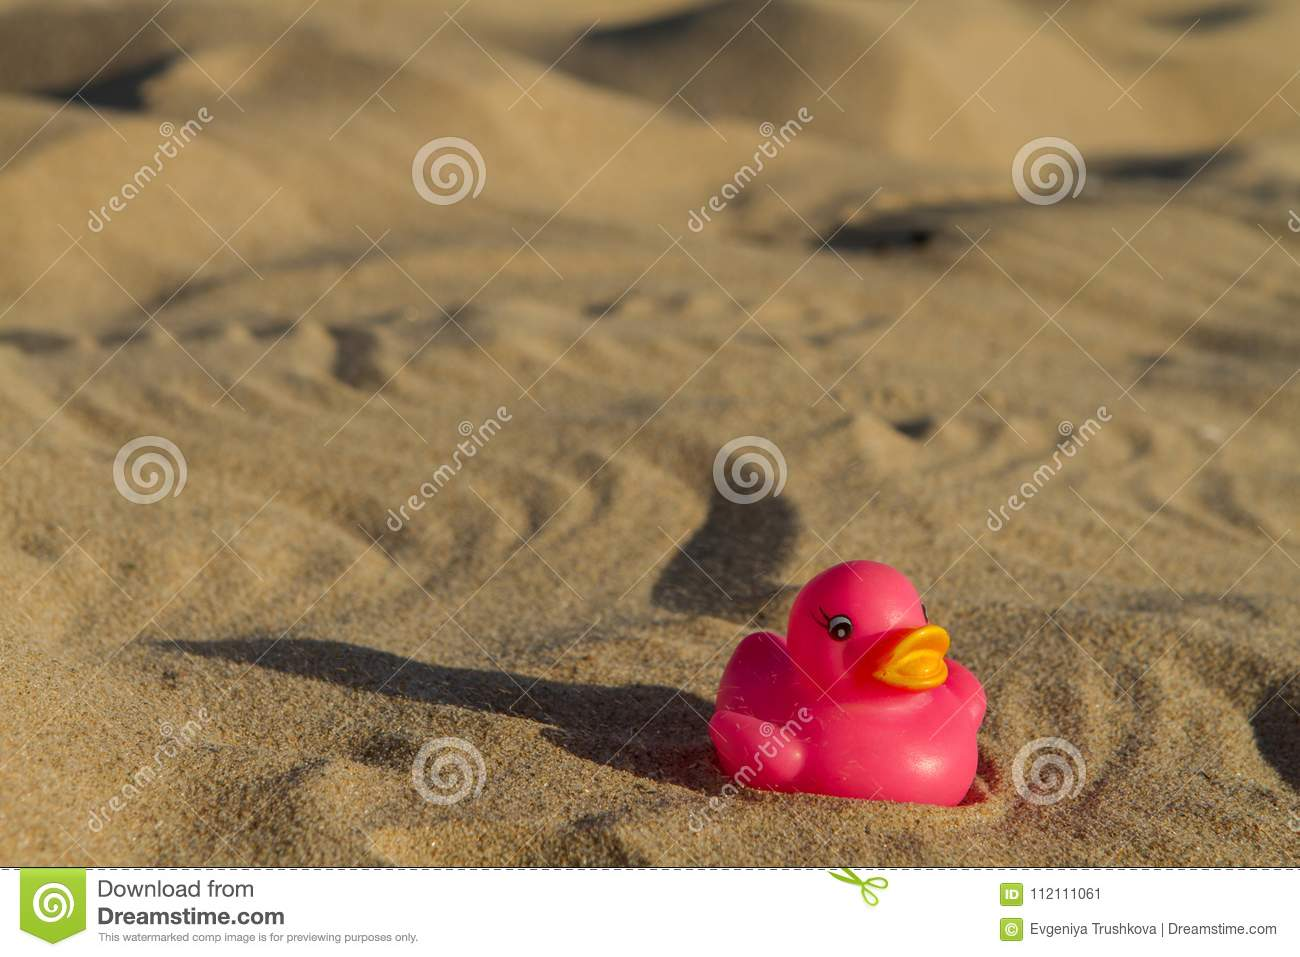 Toy Duck On The Beach In The Sand Close Up Stock Image - Image of ...